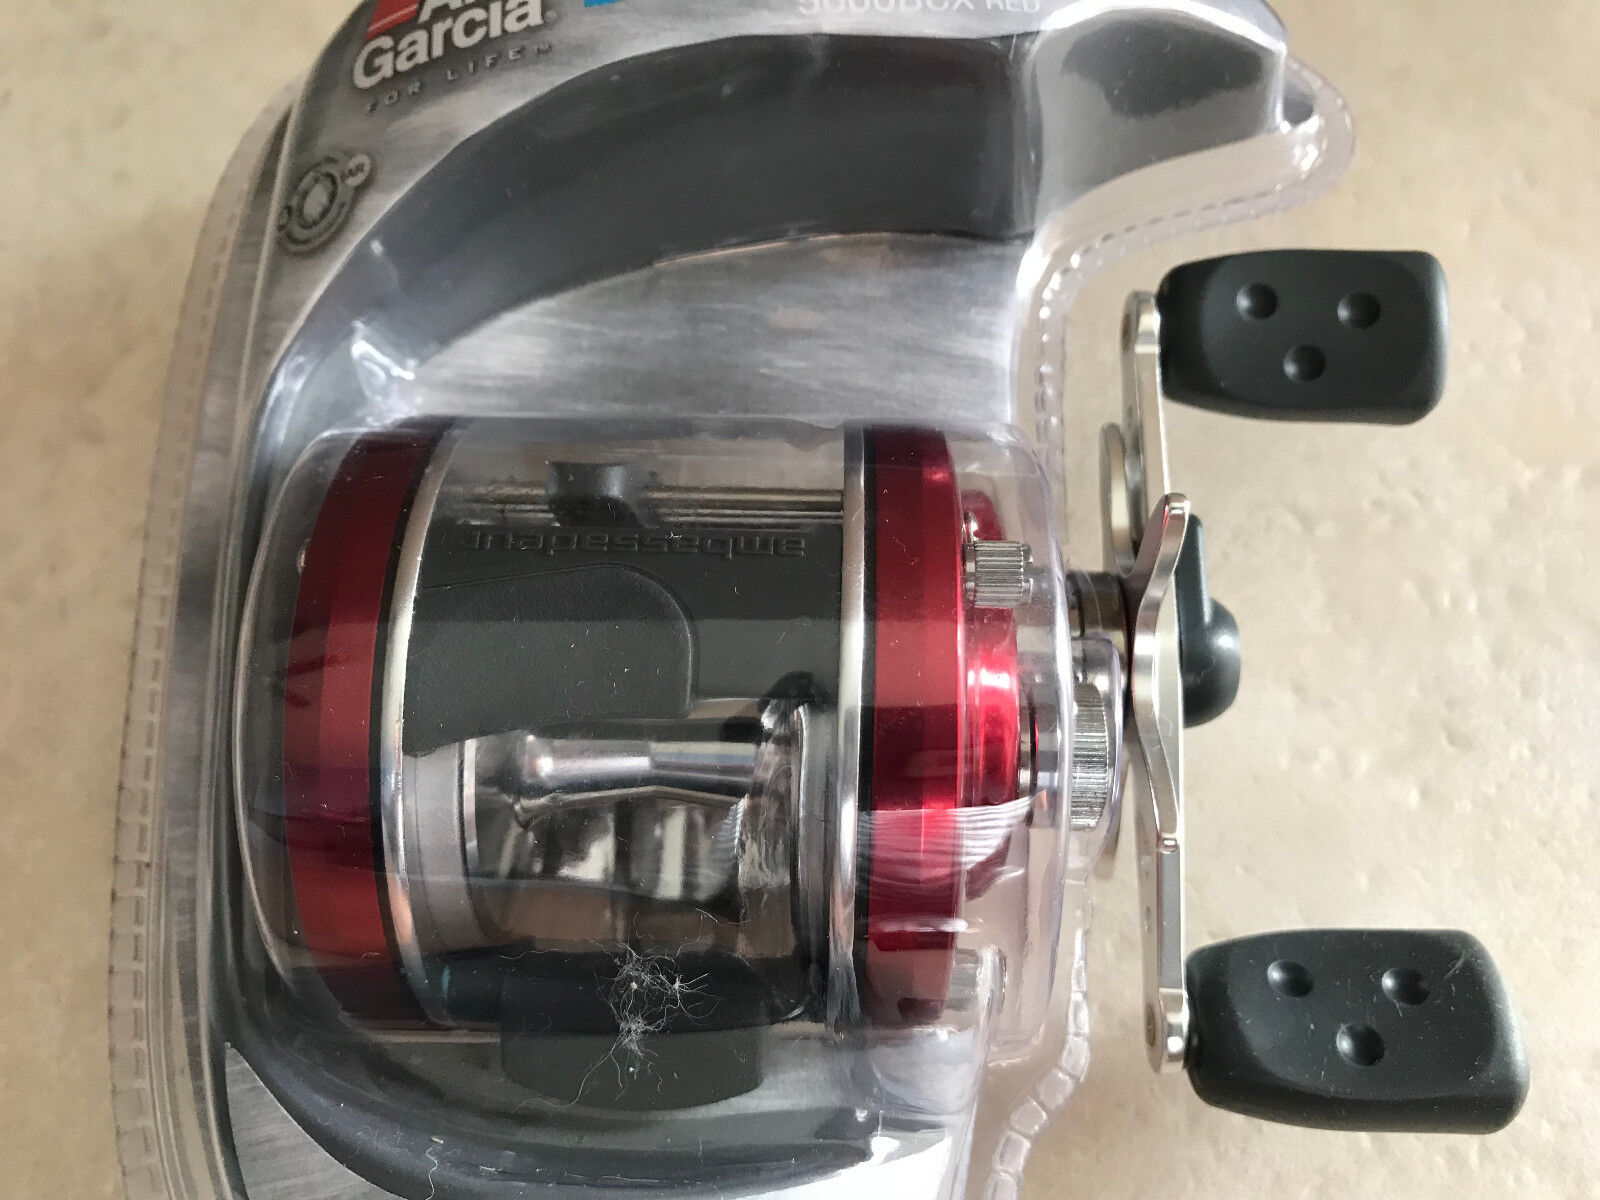 Abu Garcia Ambassadeur 5600BCX ROT Fishing Reel 5600 BCX oz. 5.3:1 Fish 10.4 oz. BCX NEW d2cbc4